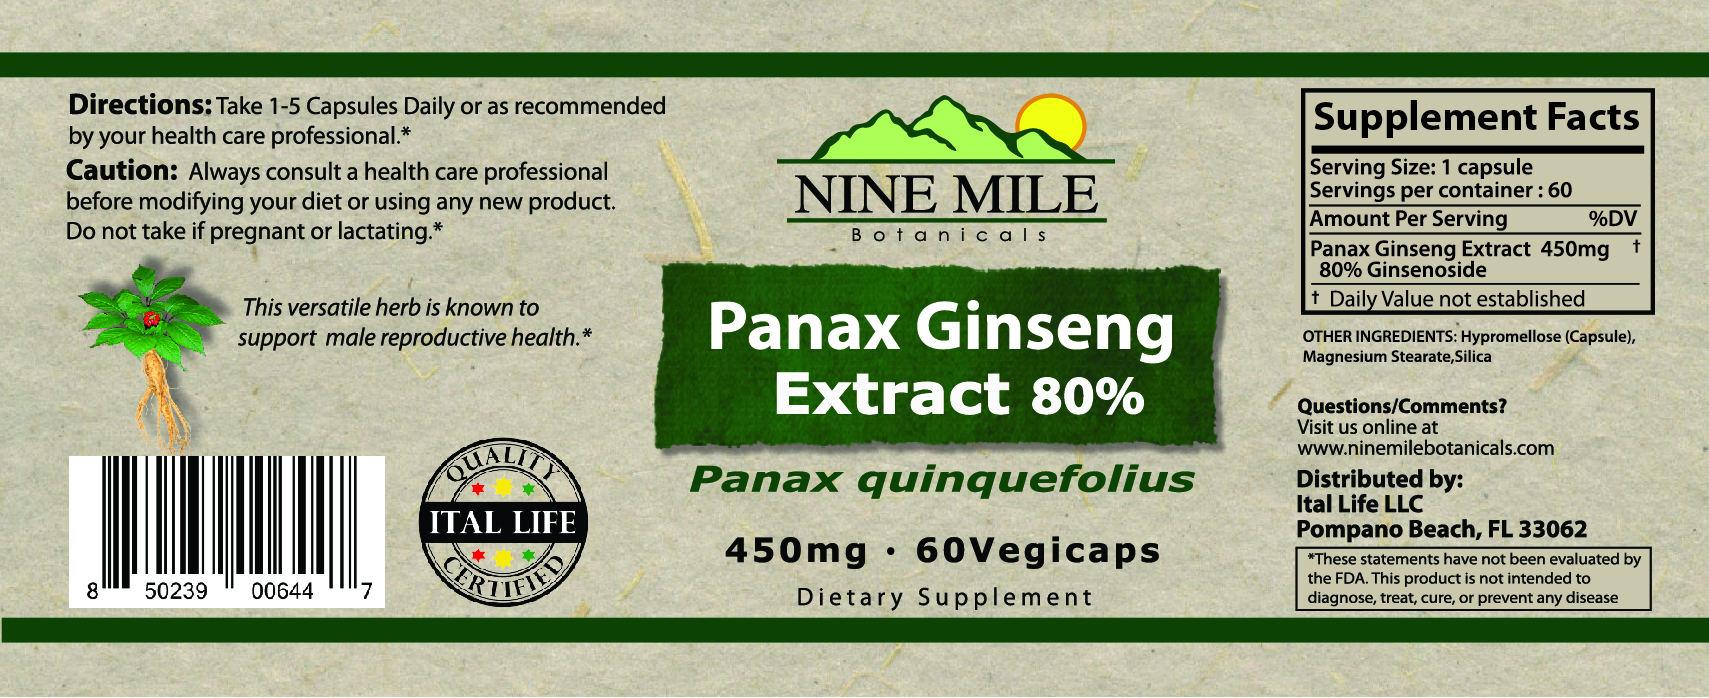 Nine Mile Botanicals Panax ginseng label